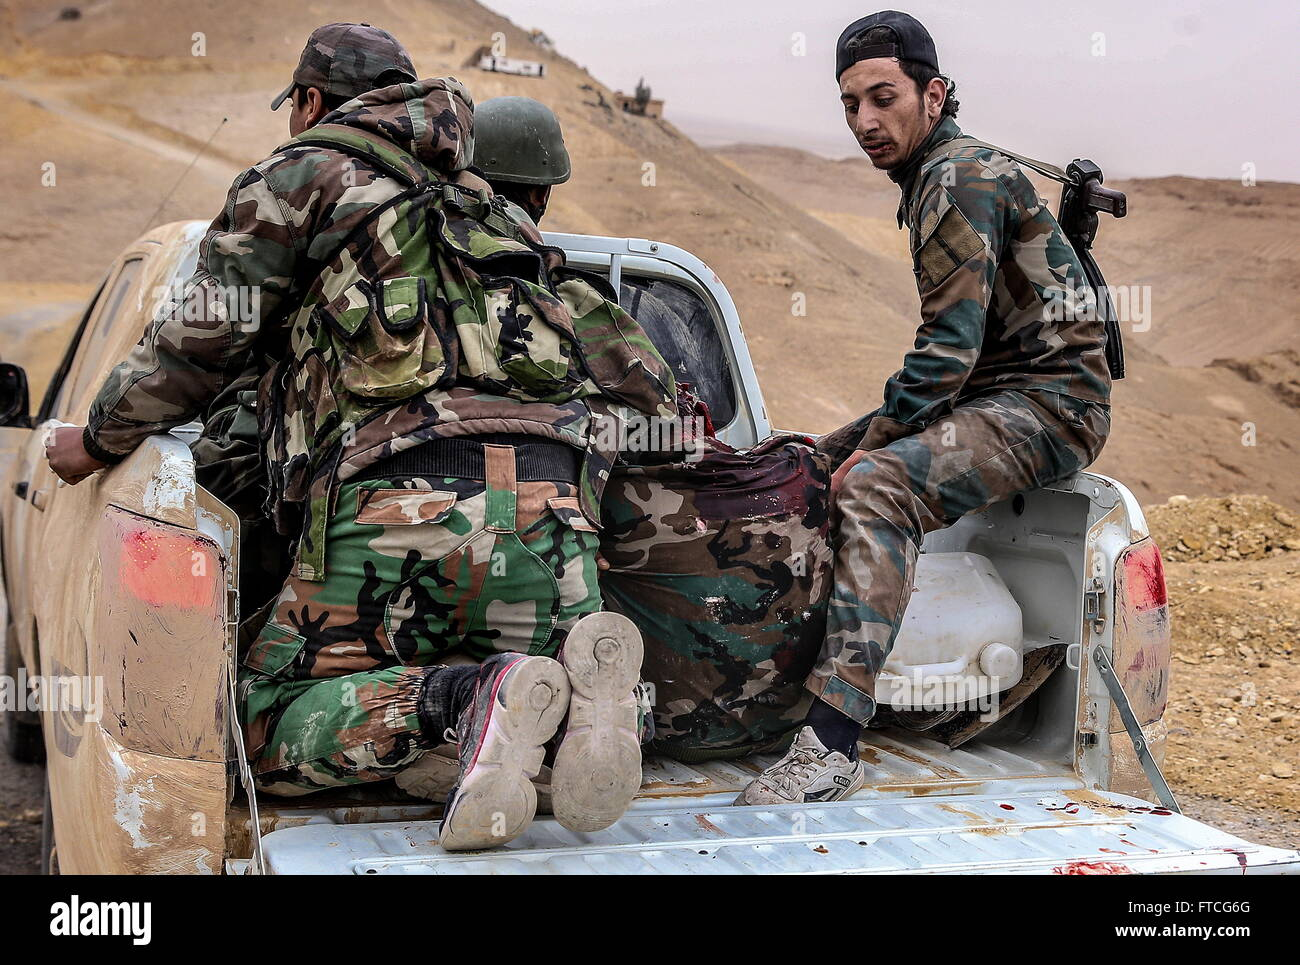 Palmyria, Syria. 26th Mar, 2016. Syrian government army soldiers tending to their fellow soldier who was injured - Stock Image